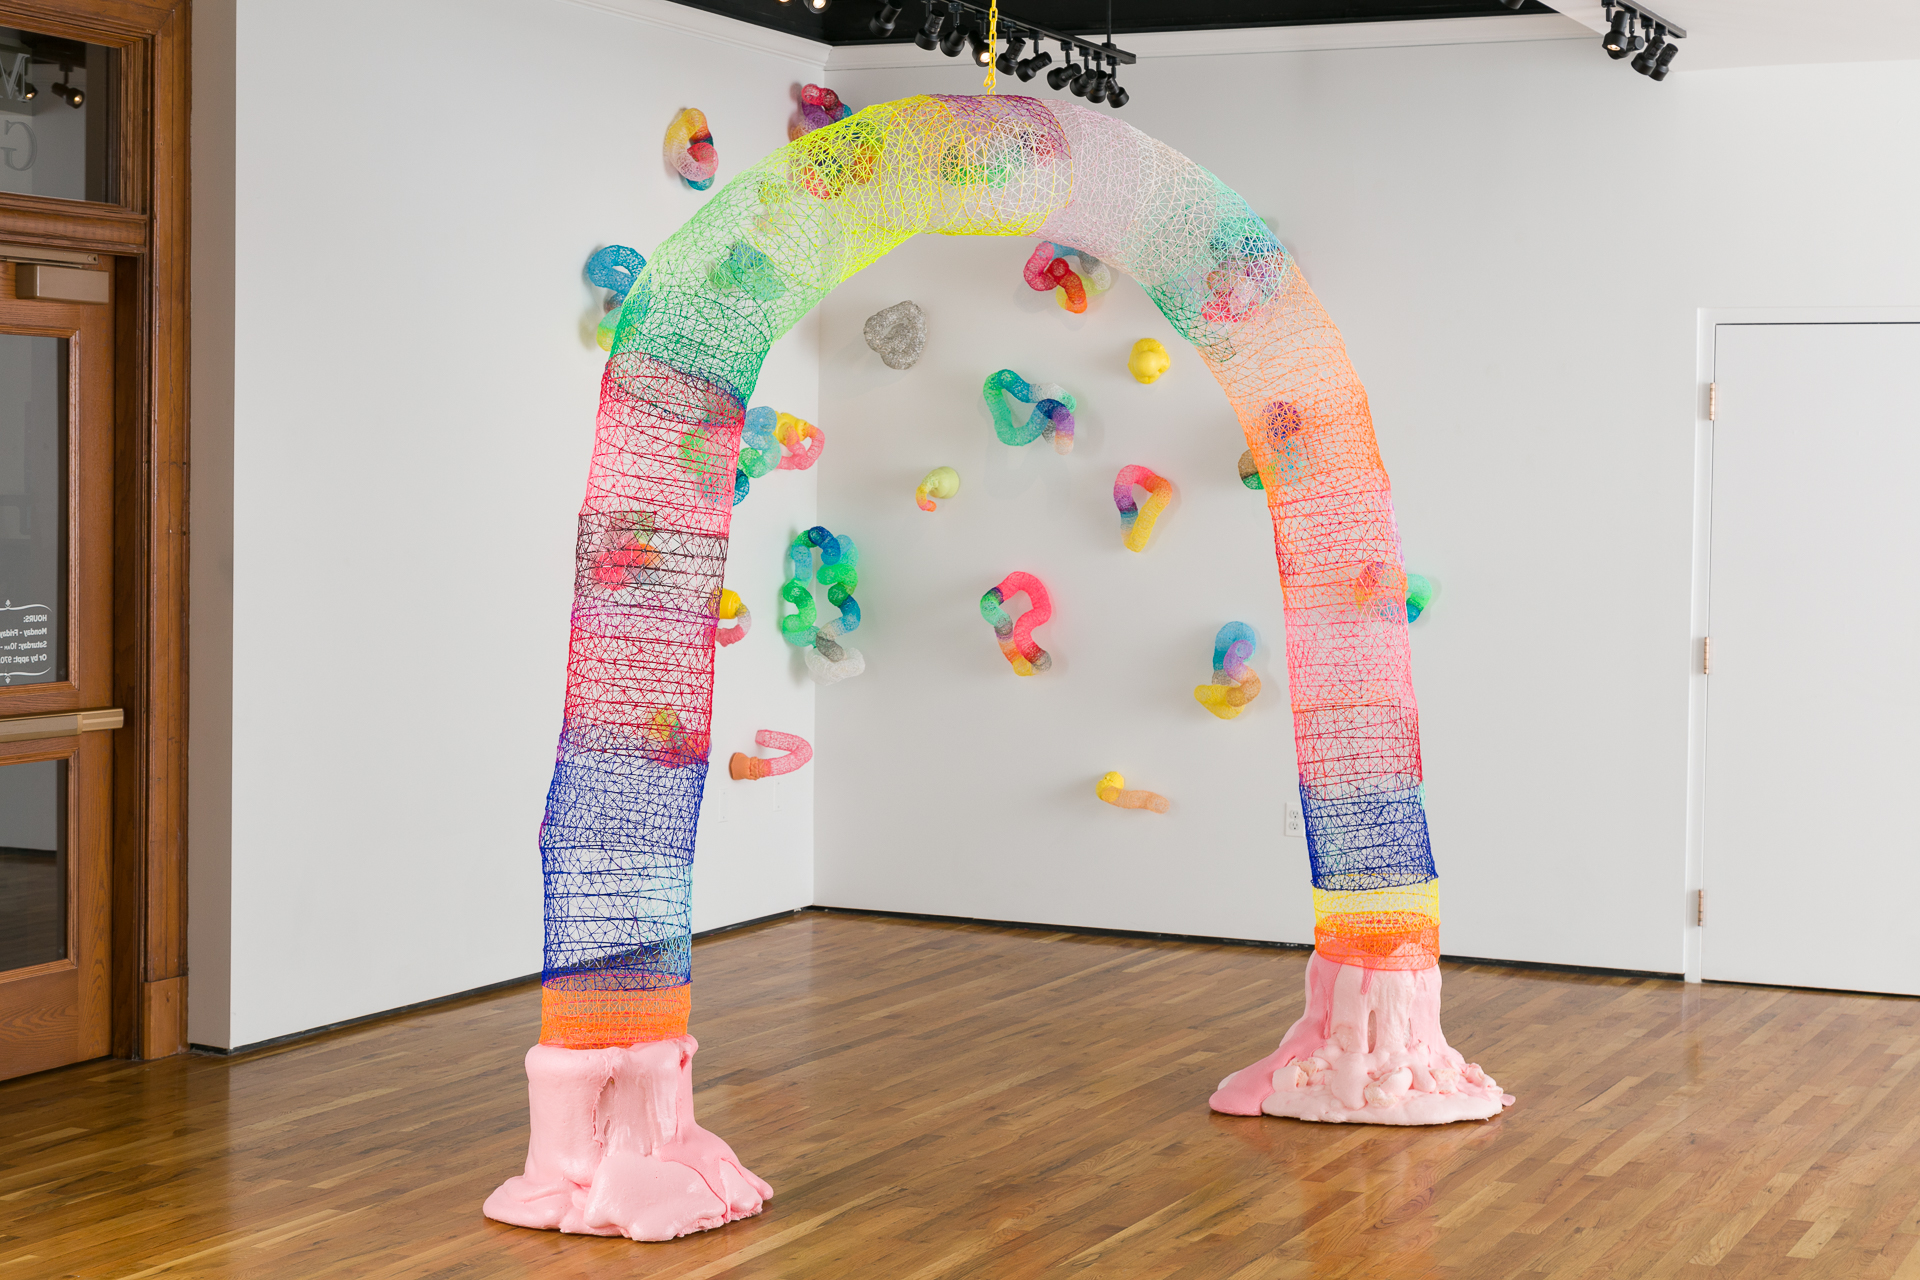 """'Large Arch' 2018, 120"""" x 120"""" x 15"""" ABS Plastic Filament, made with '3d' pen, Flex-Foam, Pigment  'Large Arch' (pictured with 'Climbing Wall' in the background), as part of my solo exhibition 'Super Synthetic' at Mariani Gallery, UNC Greeley 2018. The exhibition connecting plastic, playful tactility, with the hand-made and high-tech reminiscent of a playground."""